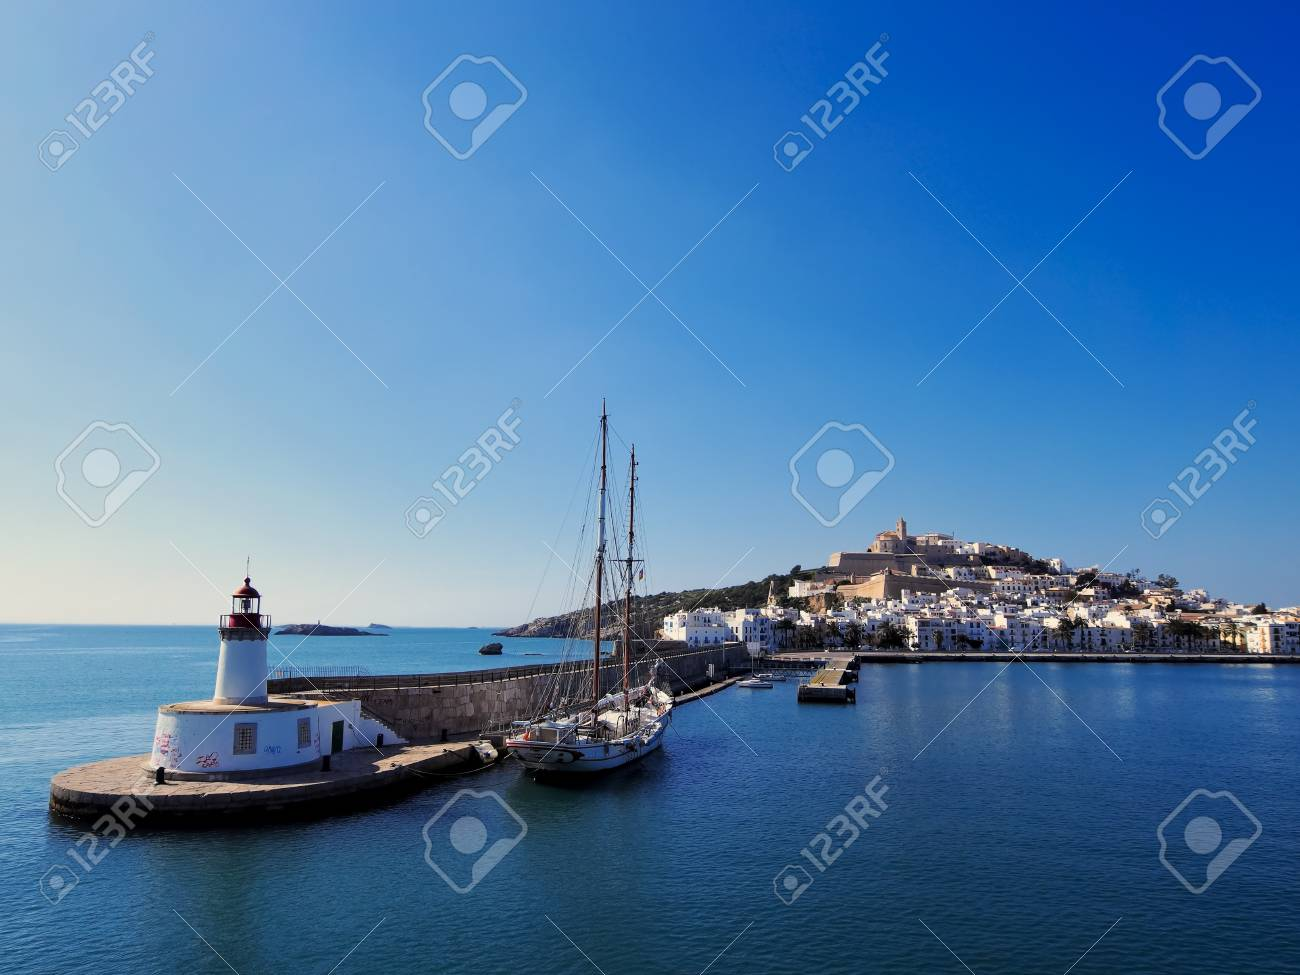 Harbor in Ibiza Town, Balearic Islands, Spain Stock Photo - 18273107